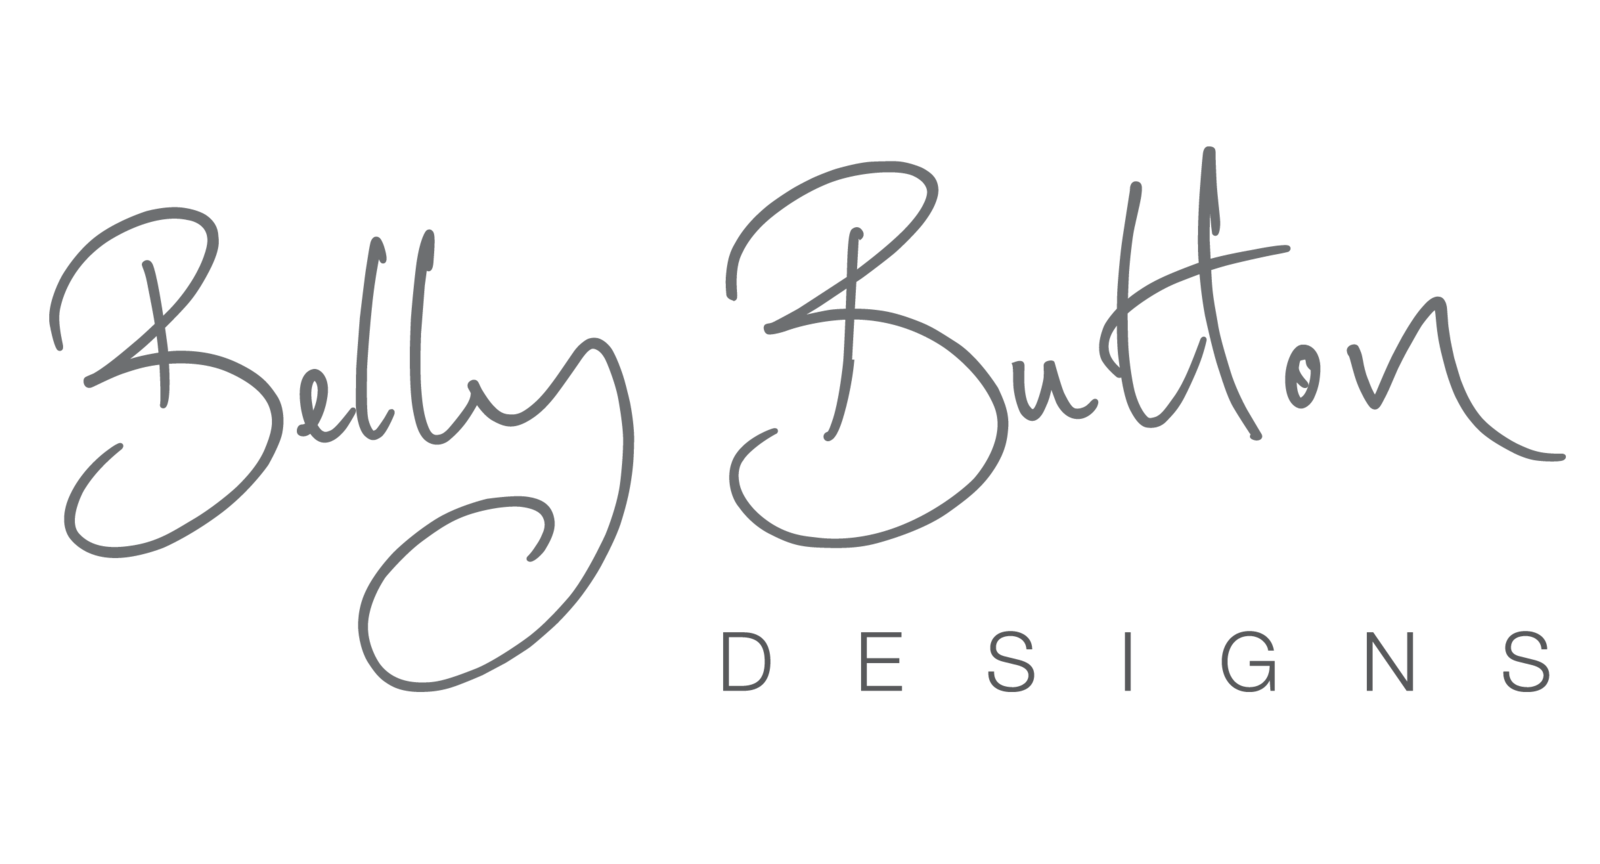 Belly Button Designs Greetings Cards